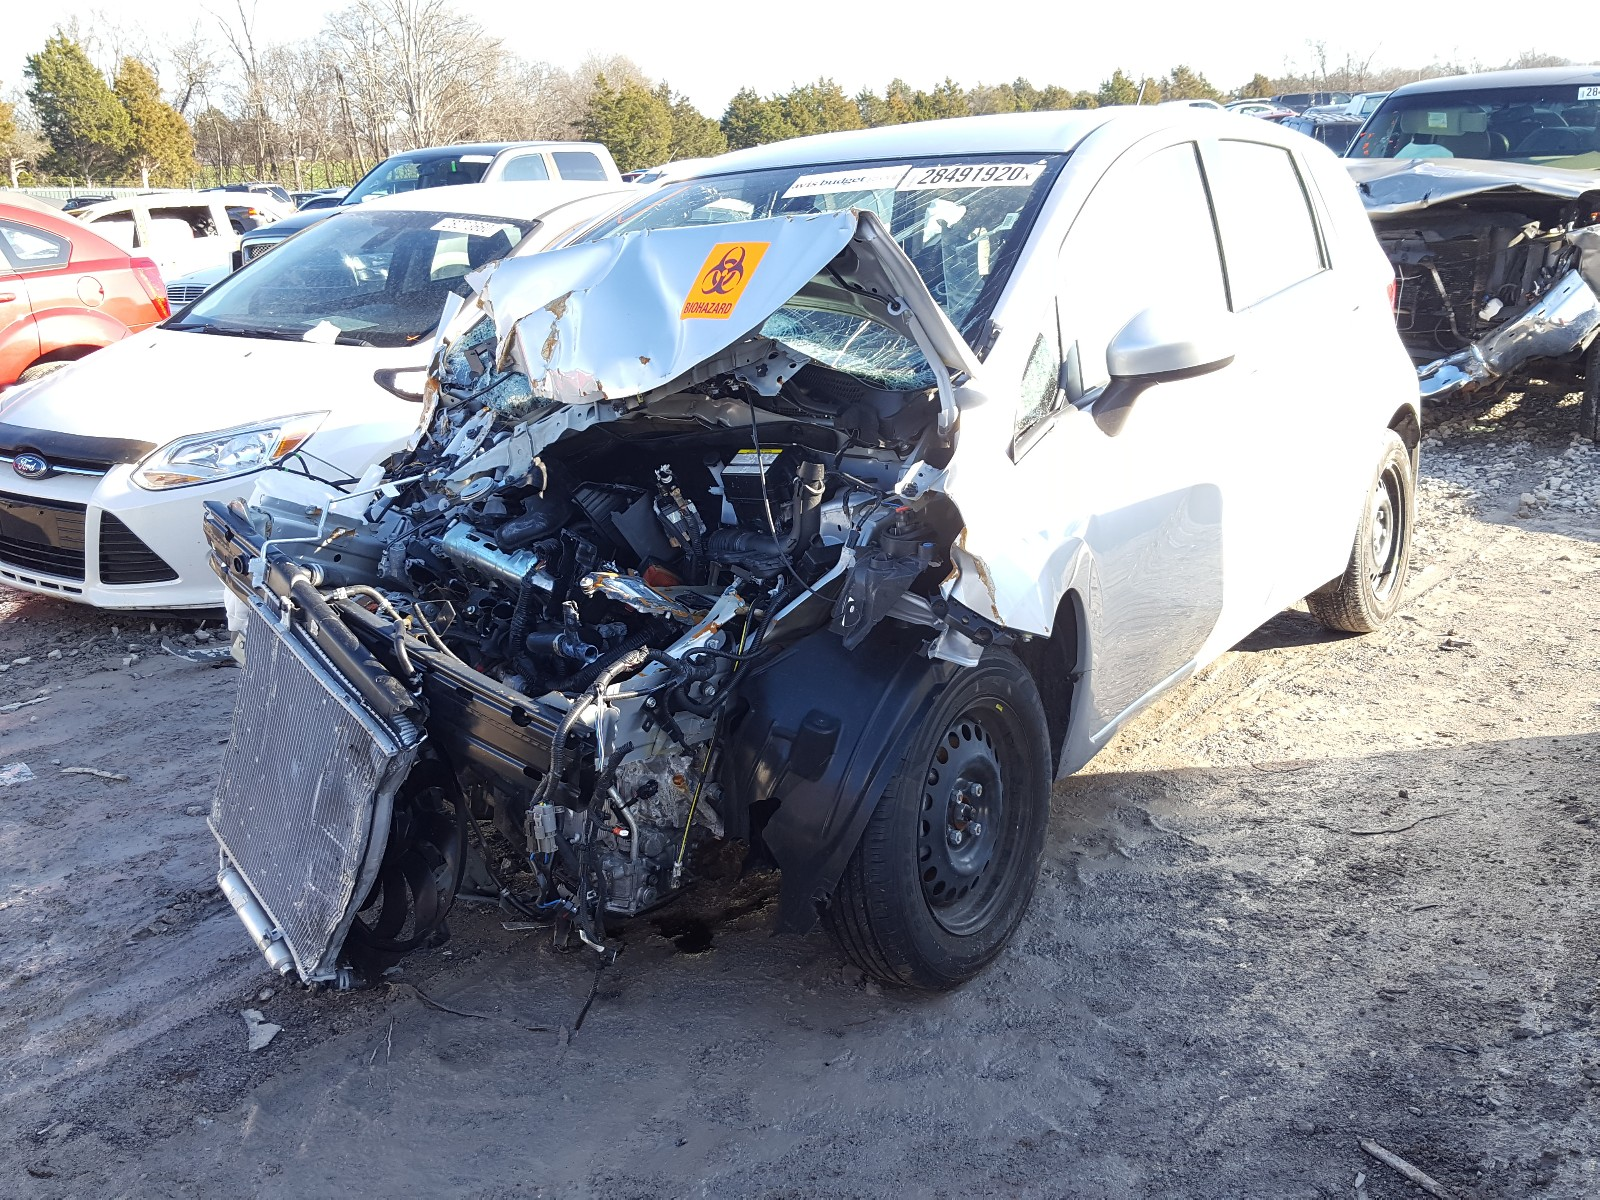 3N1CE2CP3KL358768 - 2019 Nissan Versa Note 1.6L Right View